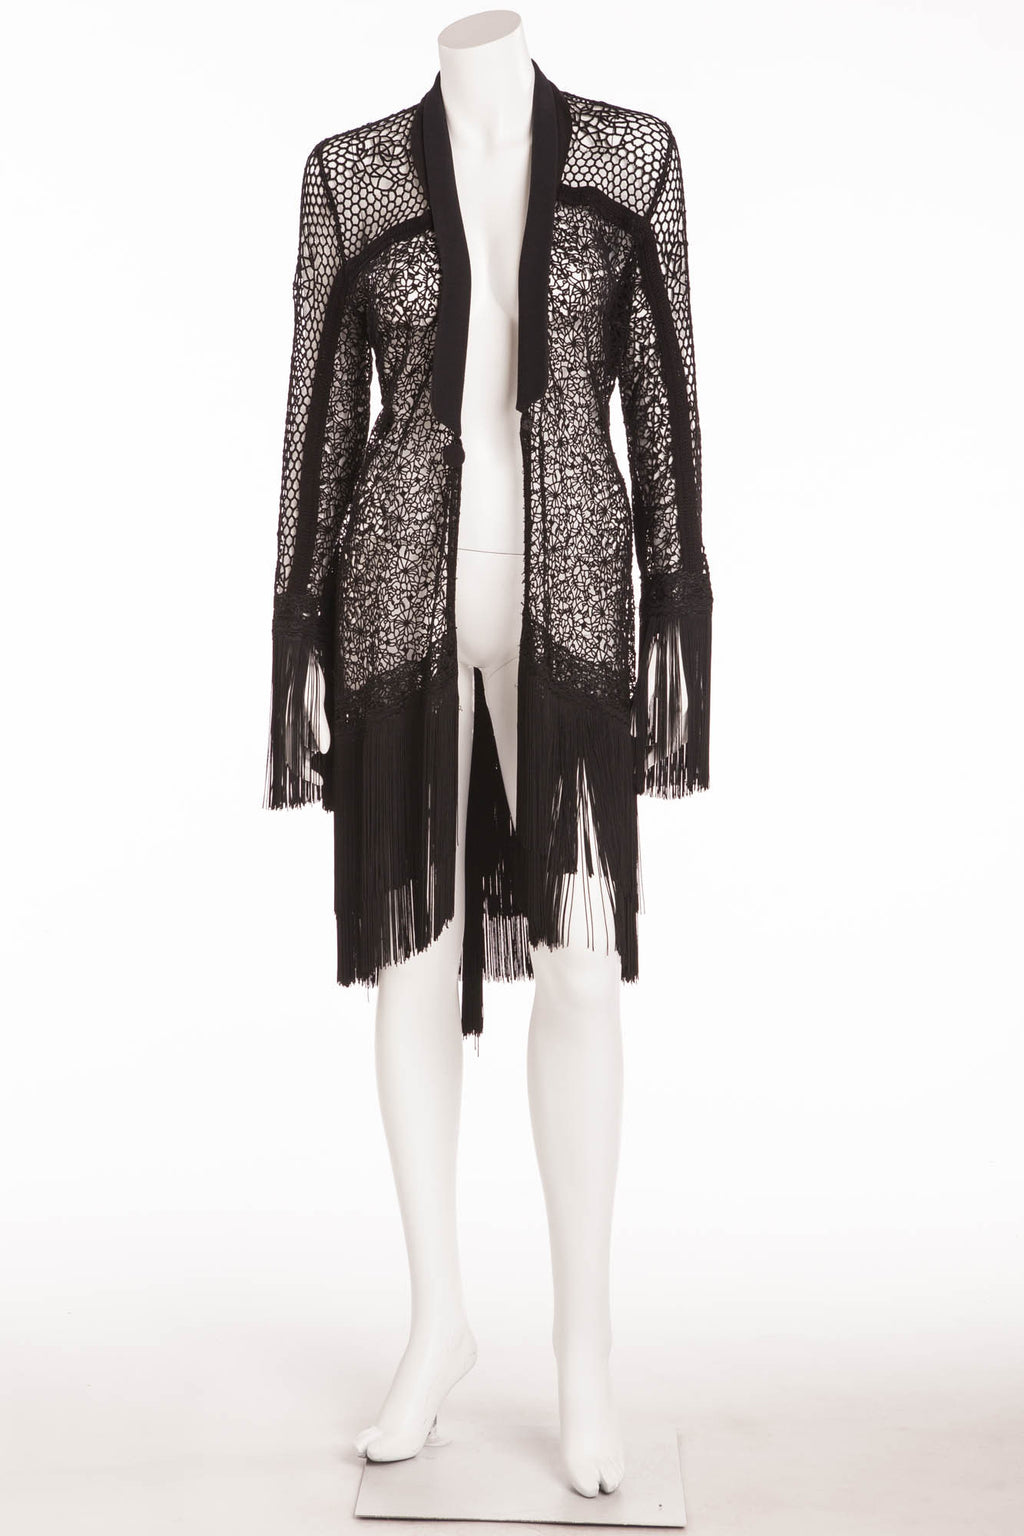 Ermanno Scervino - Black Knitted Long Cardigan with Fringe -IT 42